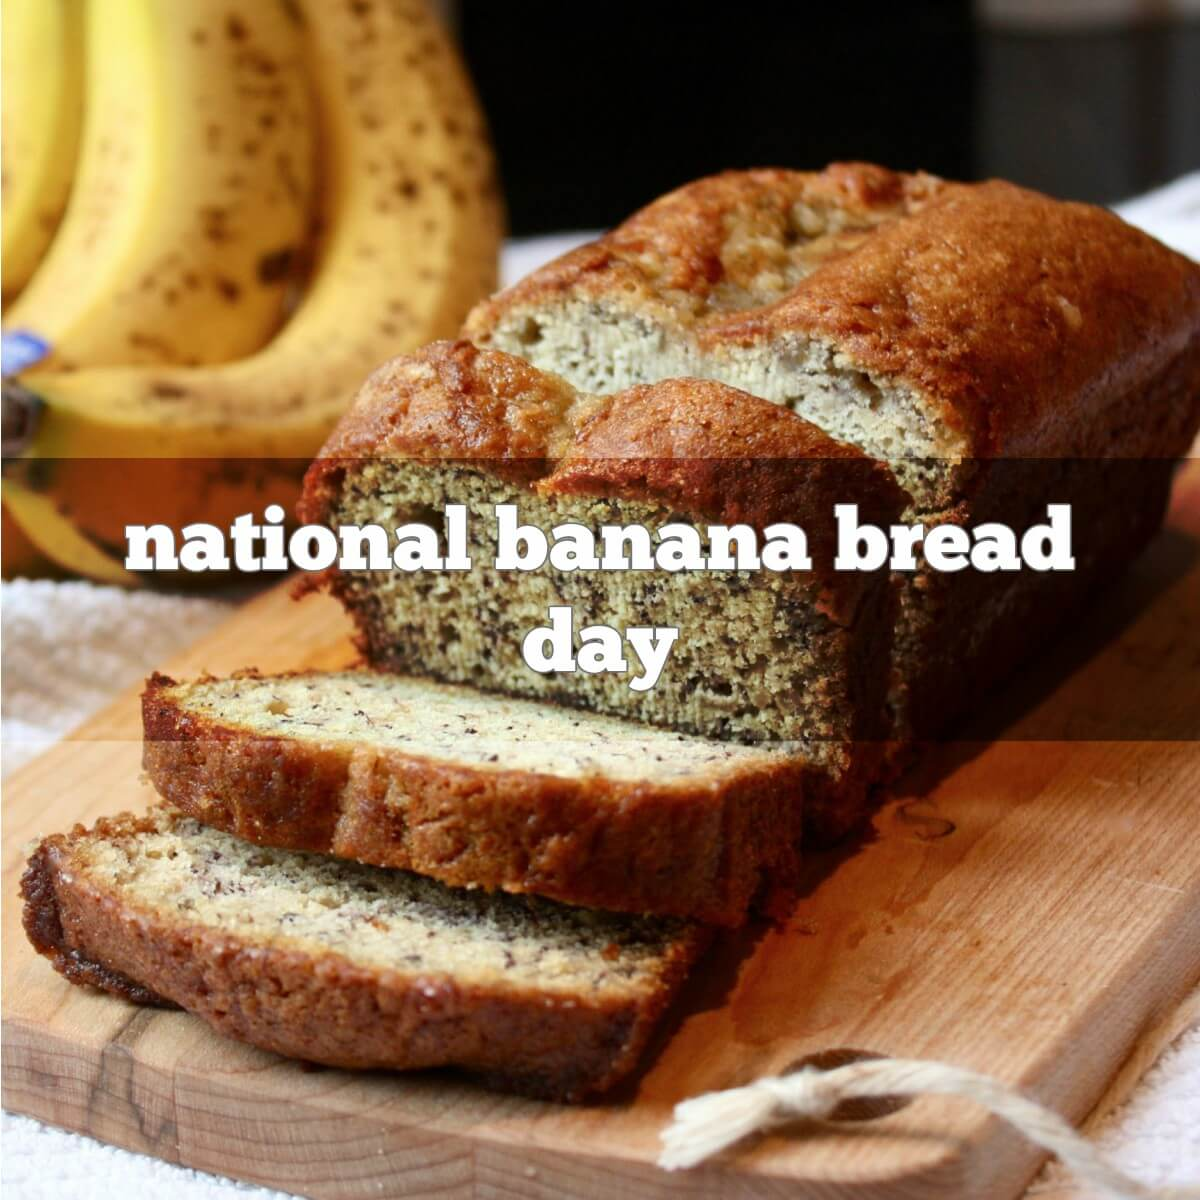 National Banana Bread Day 2018 - February 23